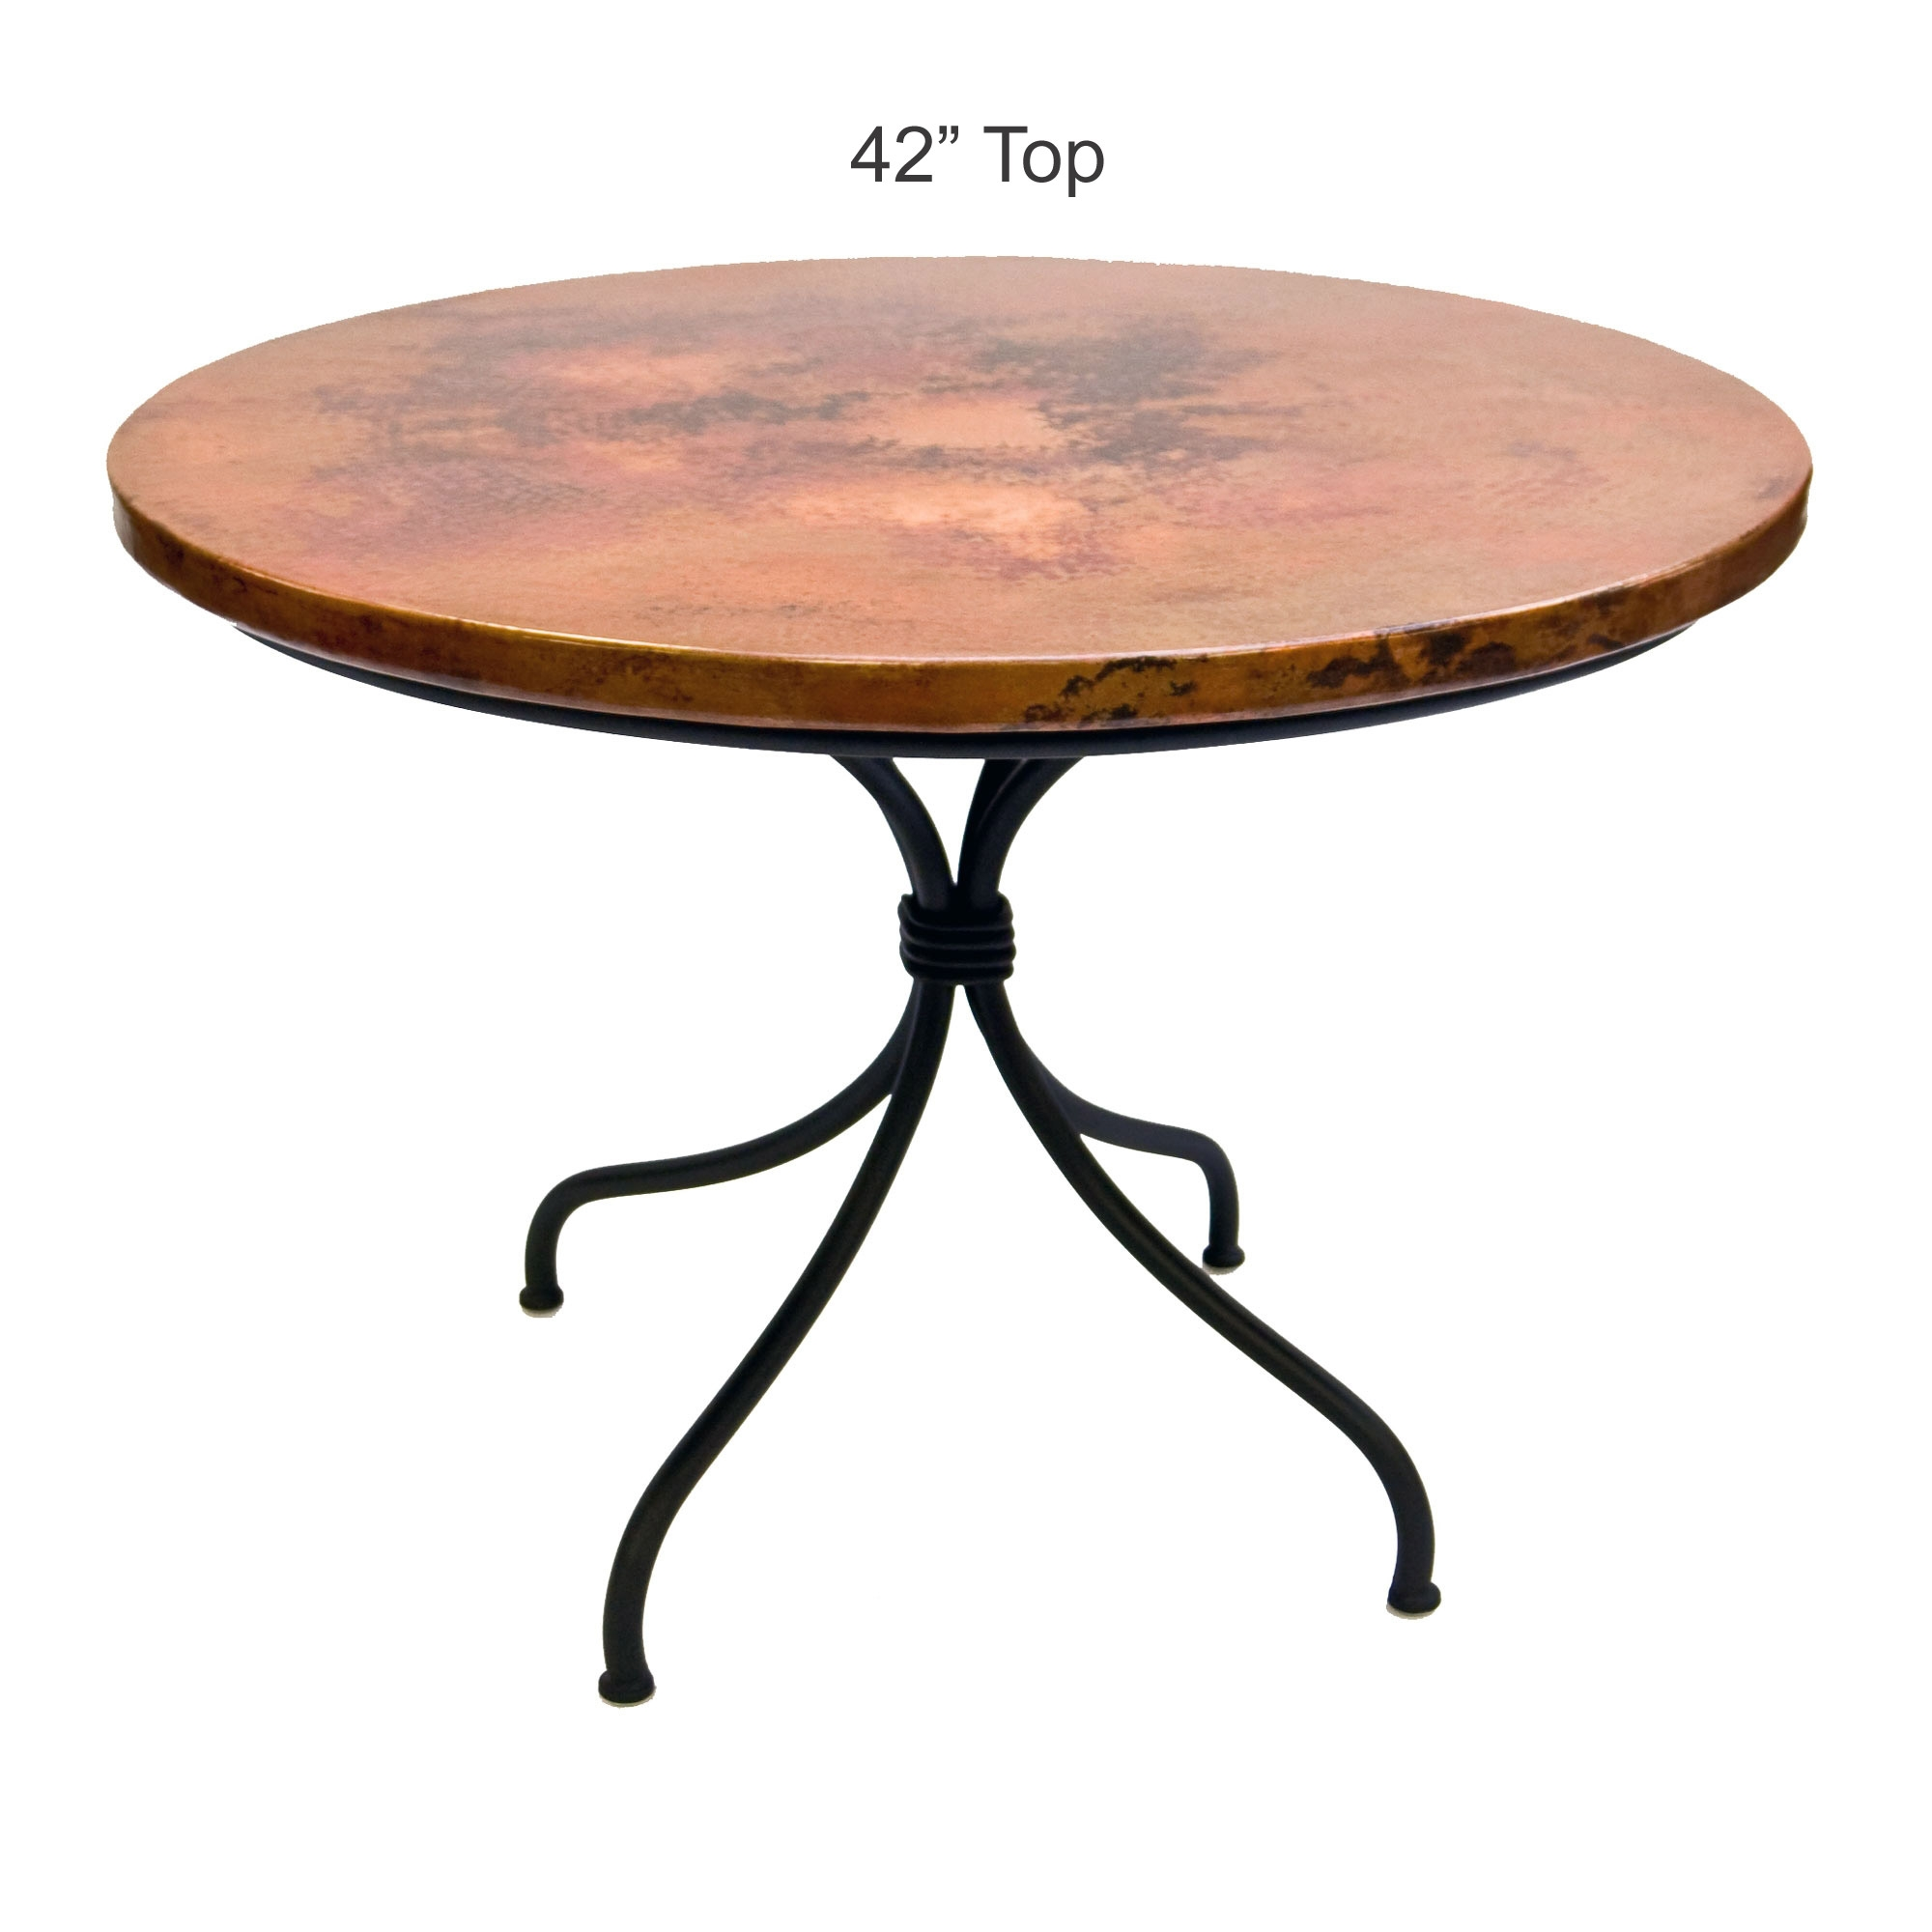 Contemporary Wrought Iron Italia Dining Table 42in Round Top